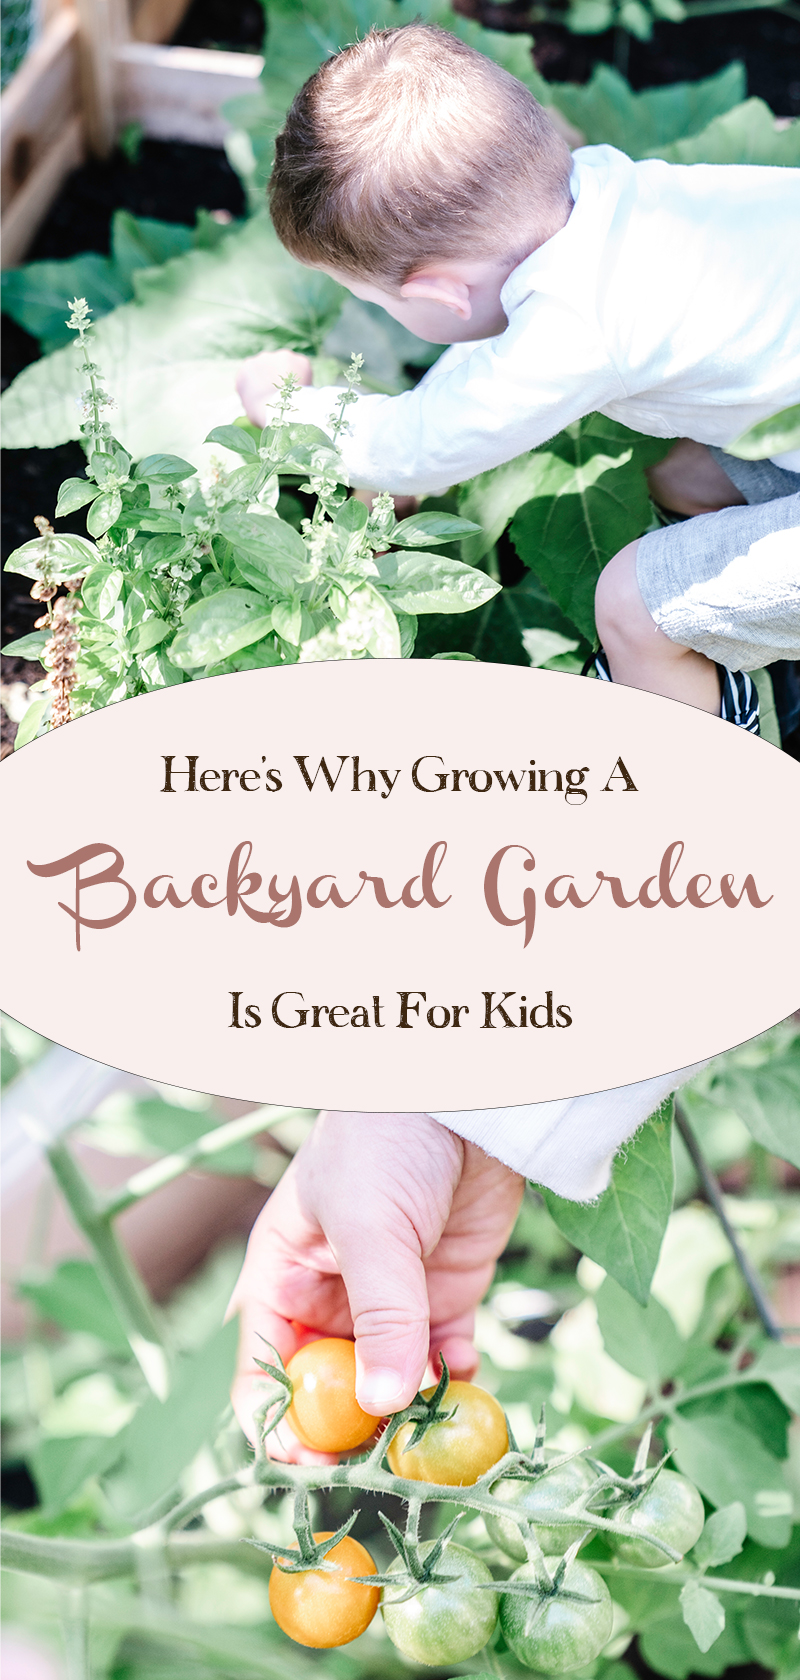 Heres-Why-Growing-a-Backyard-Vegetable-Garden-Is-Great-for-Kids